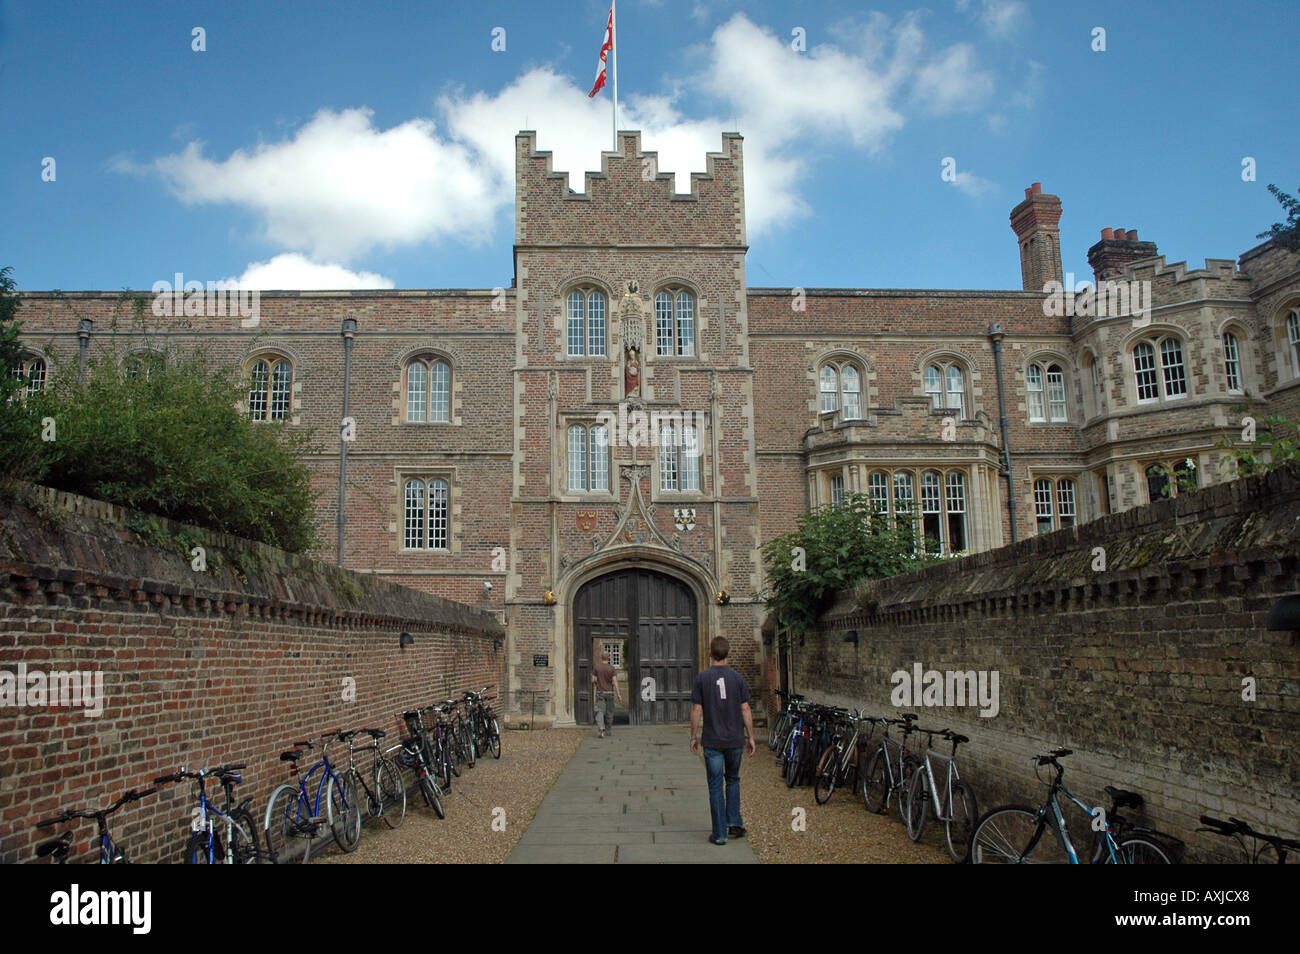 Entrance and walls of Jesus College in Cambridge, UK - Stock Image